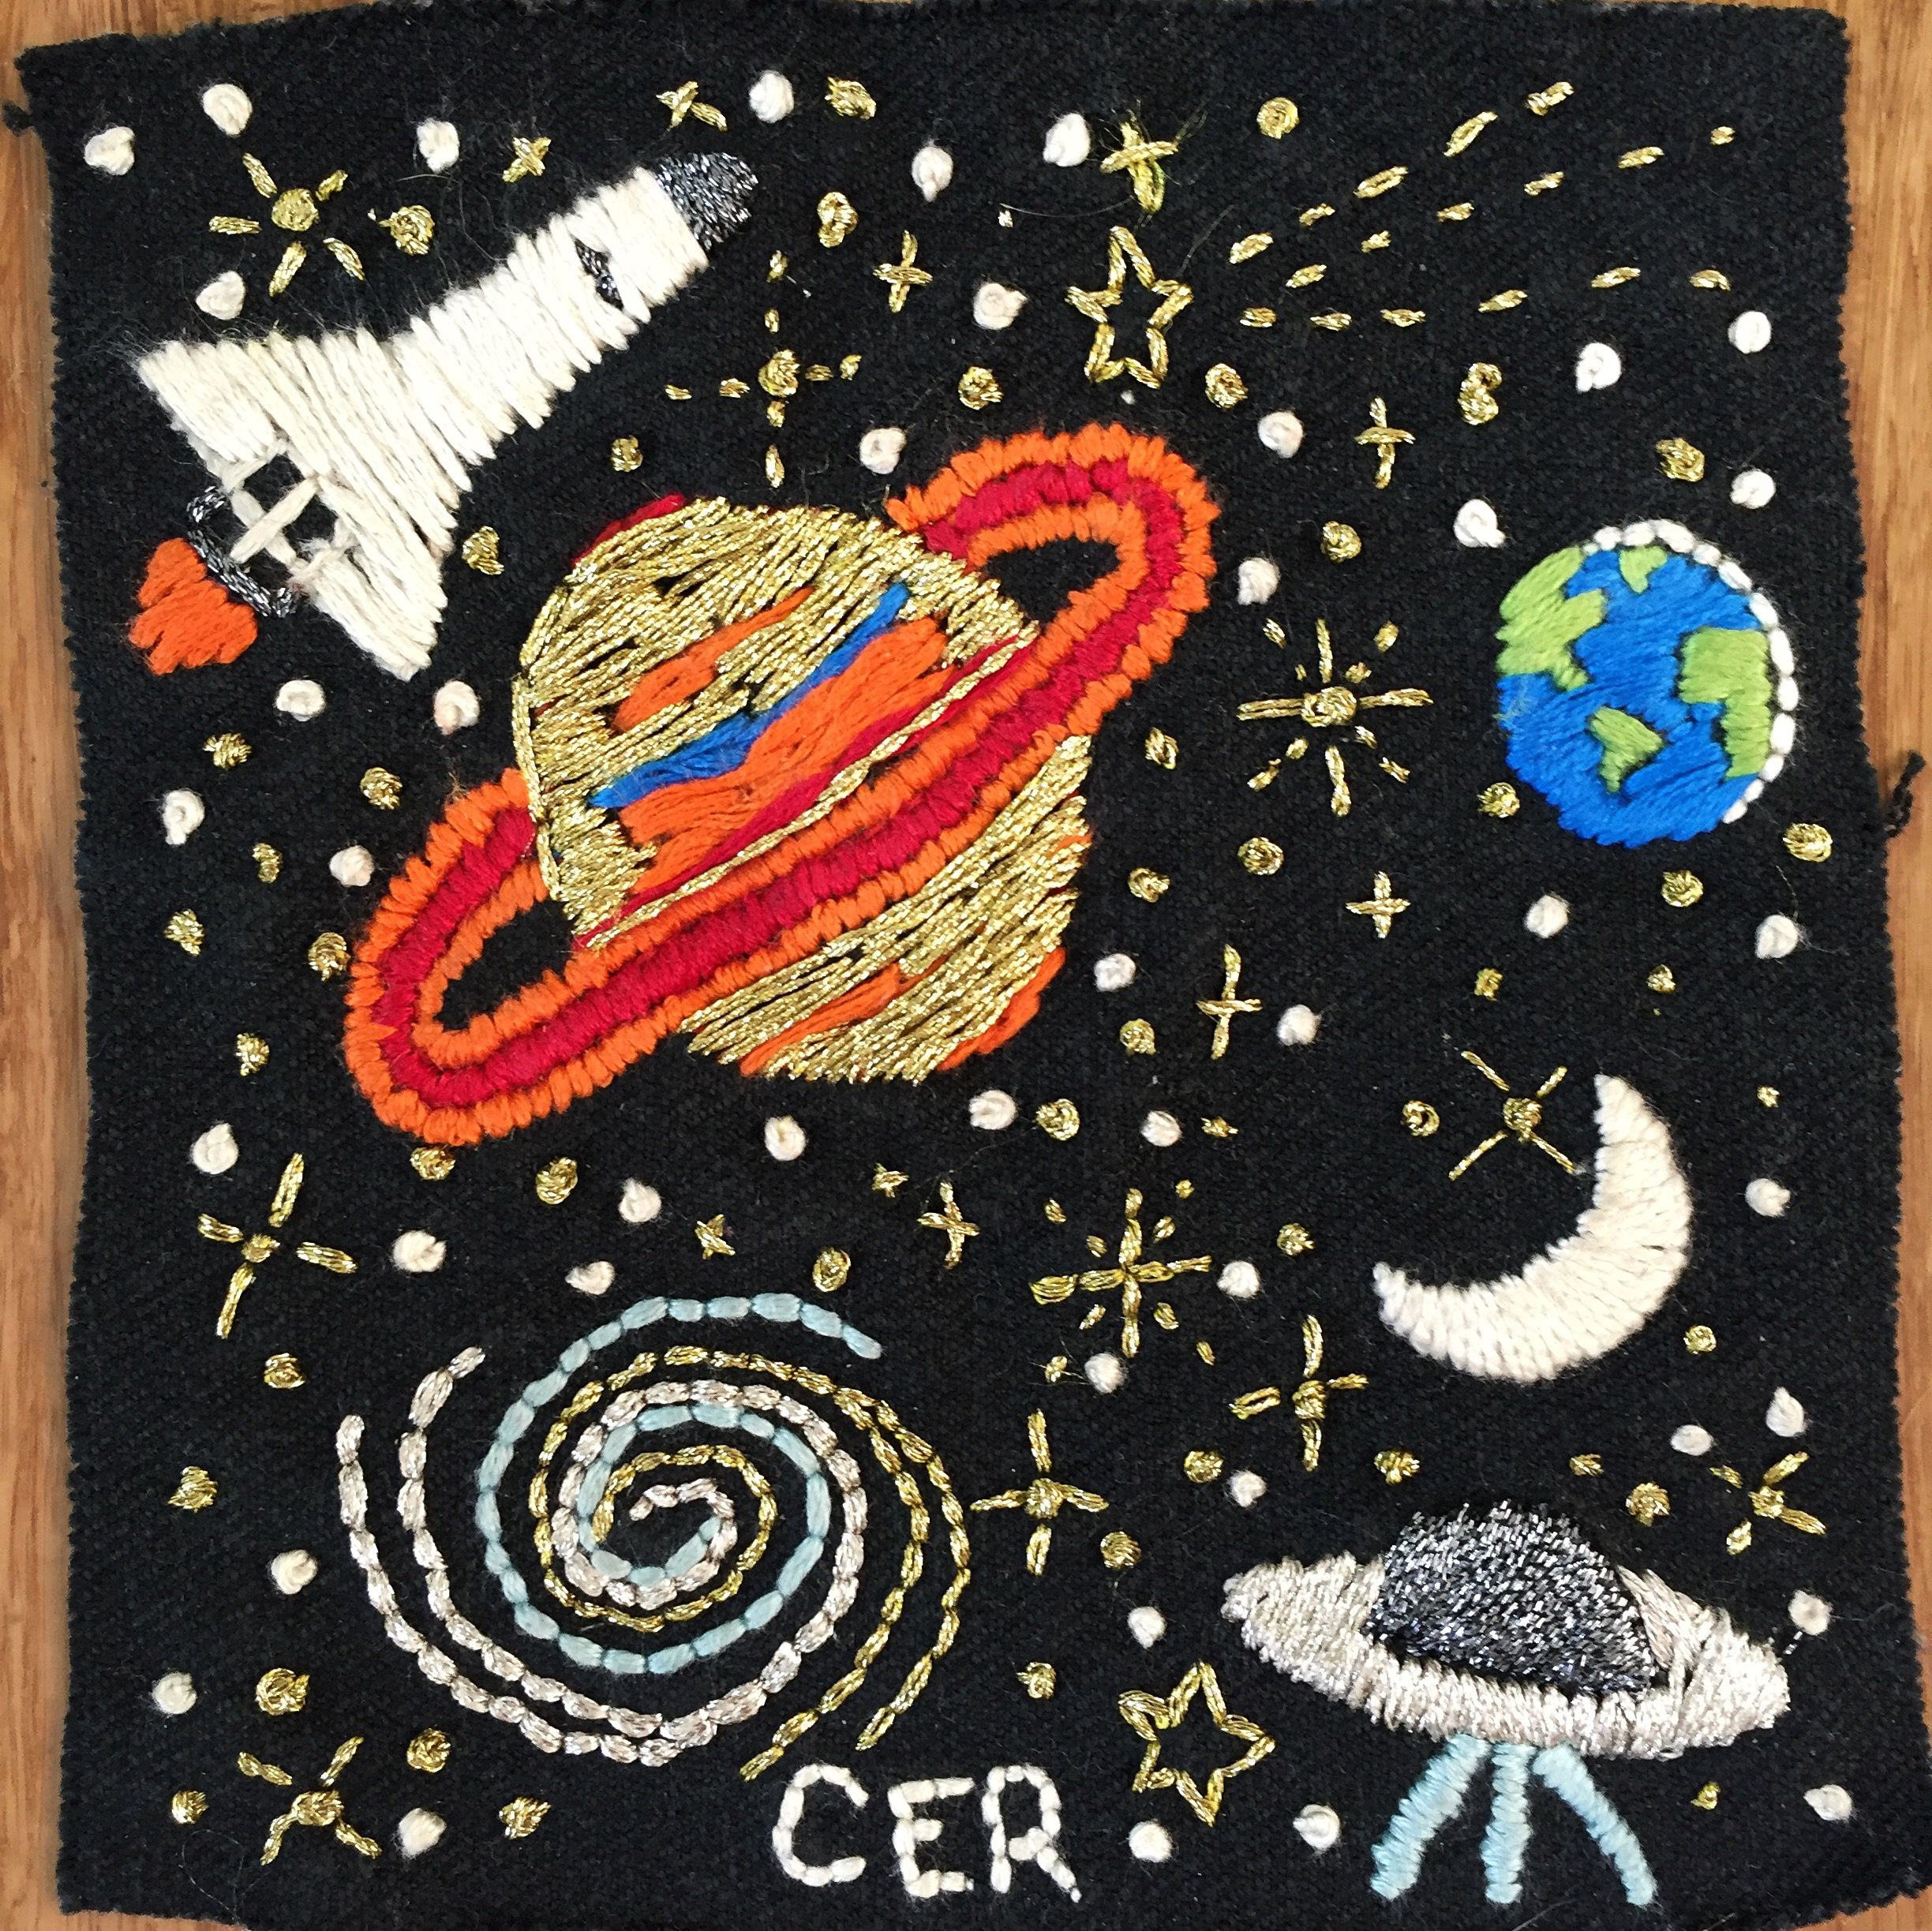 Space embroidery by @chelseaerinray (Instagram) // hand embroidery // Saturn // moon // Galaxy // ufo // stars // patch